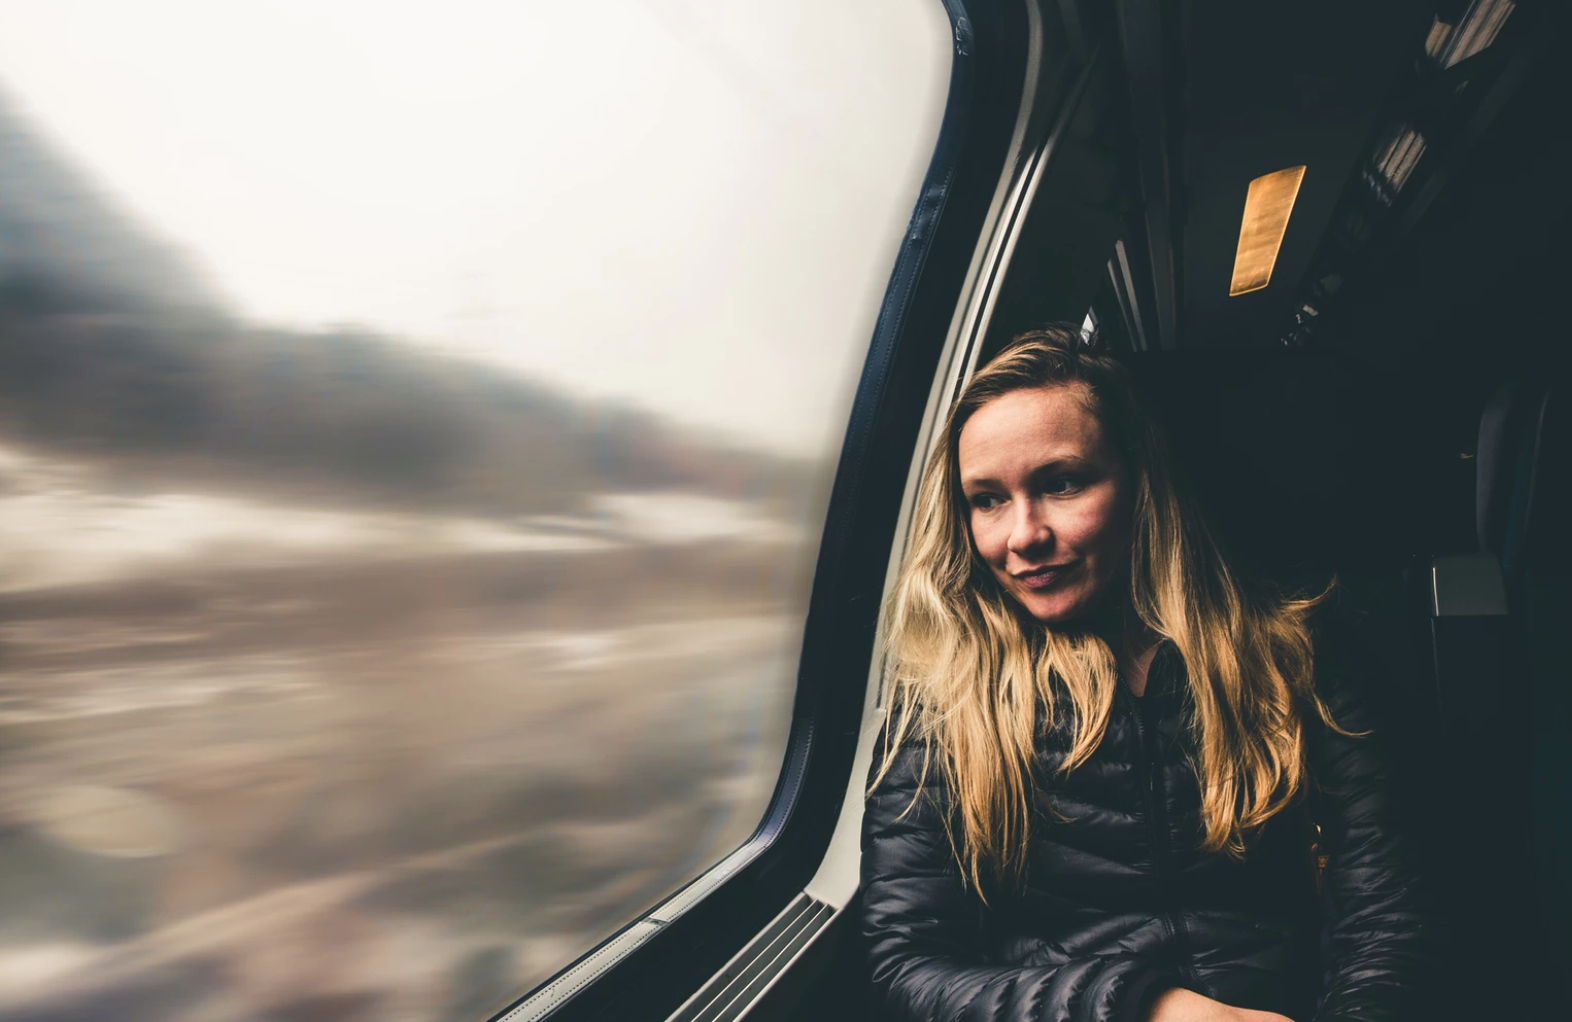 A young woman sits on the train